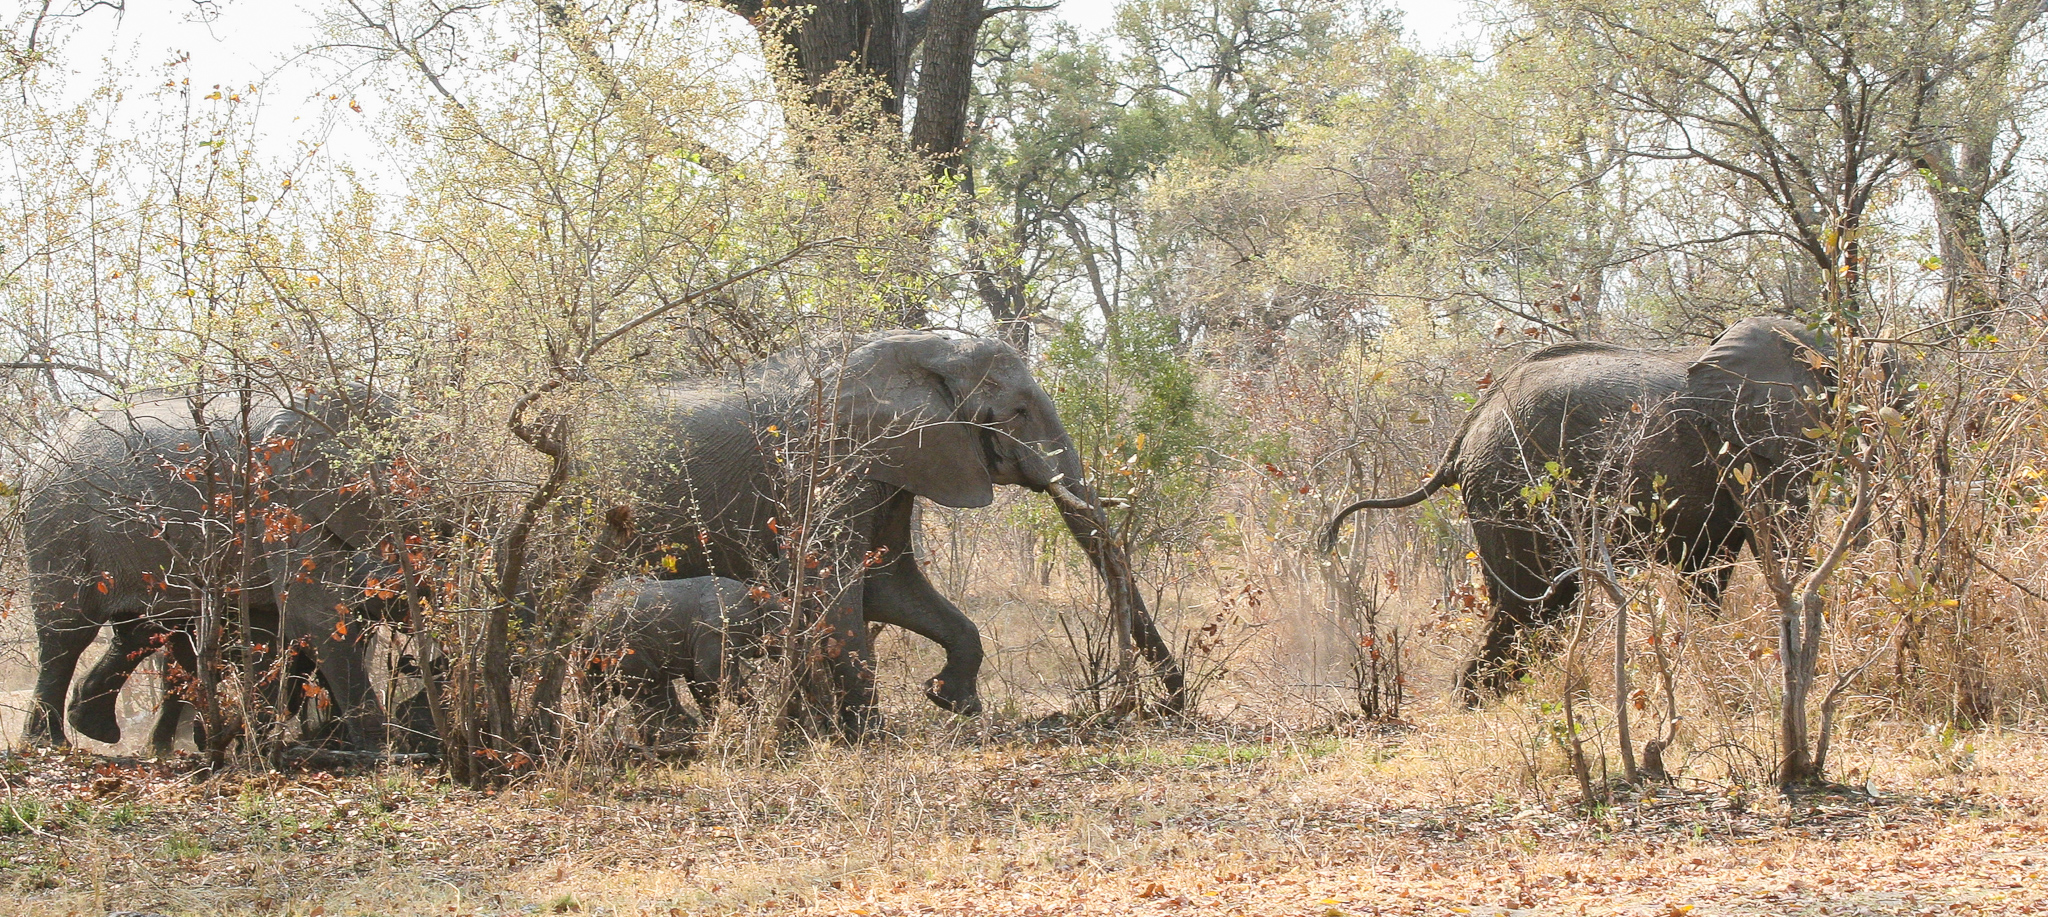 IT'S EXTRAORDINARY HOW QUIETLY ELEPHANTS CAN MOVE THROUGH THE BUSH WHEN THEY CHOOSE TO.